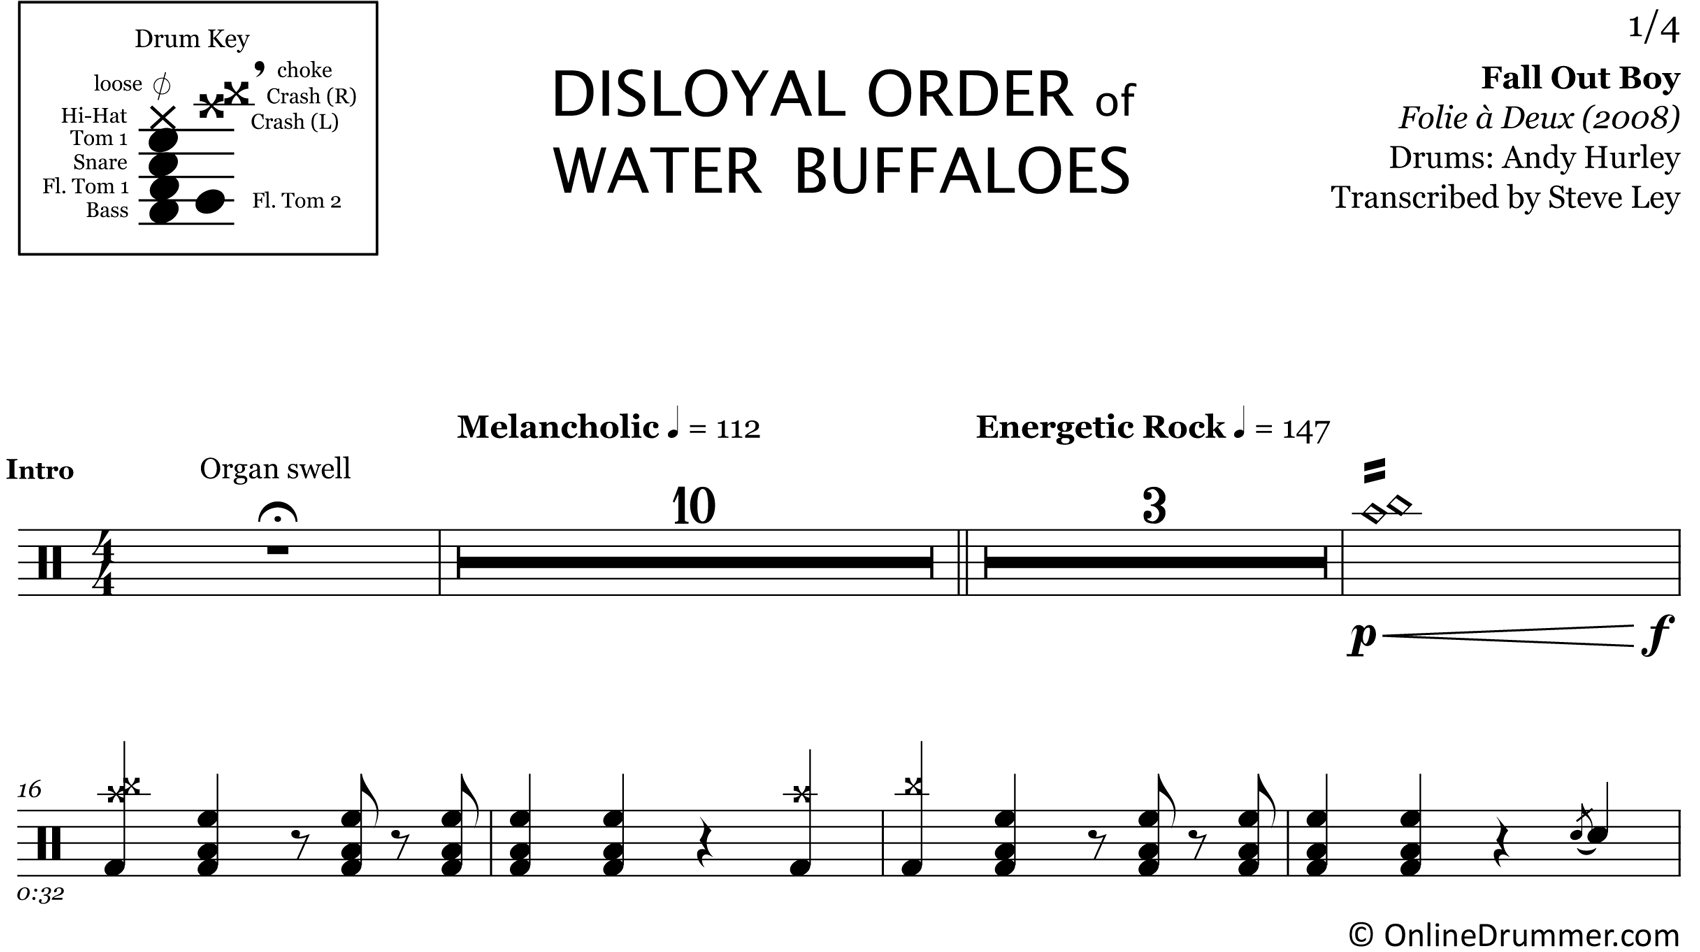 Disloyal Order of Water Buffaloes - Fall Out Boy - Drum Sheet Music